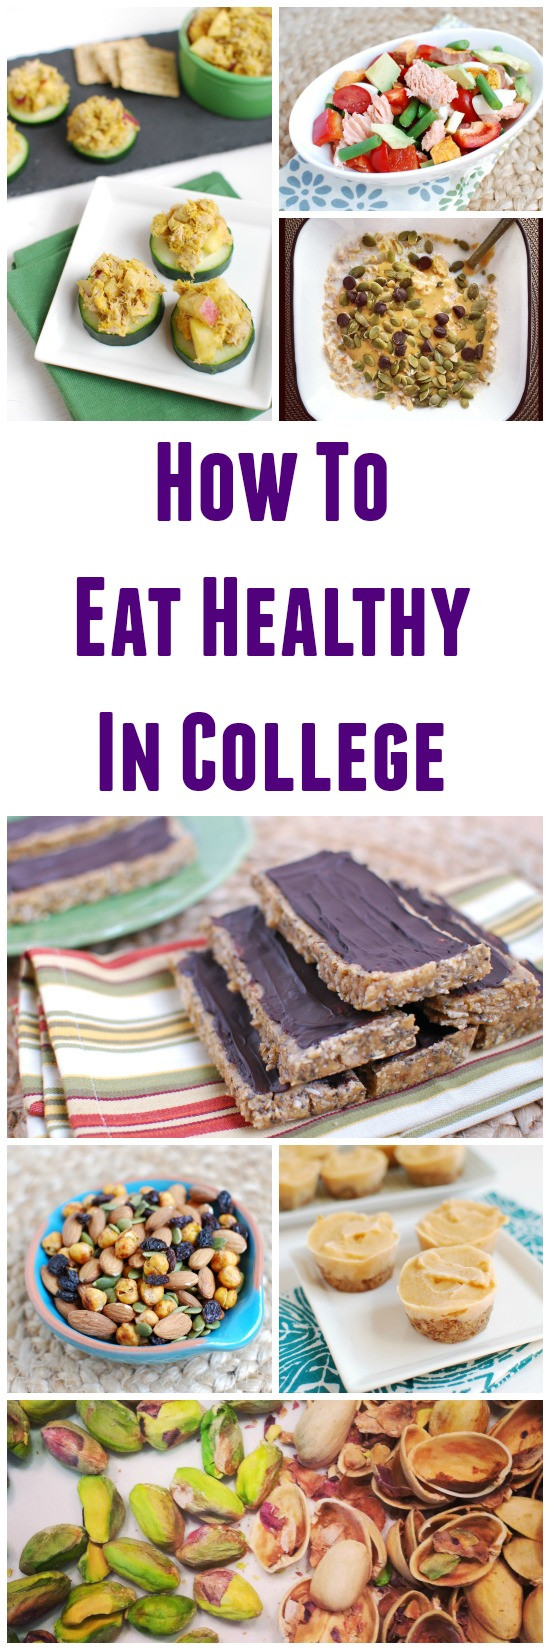 Healthy Snacks For College Students  How to Eat Healthy in College